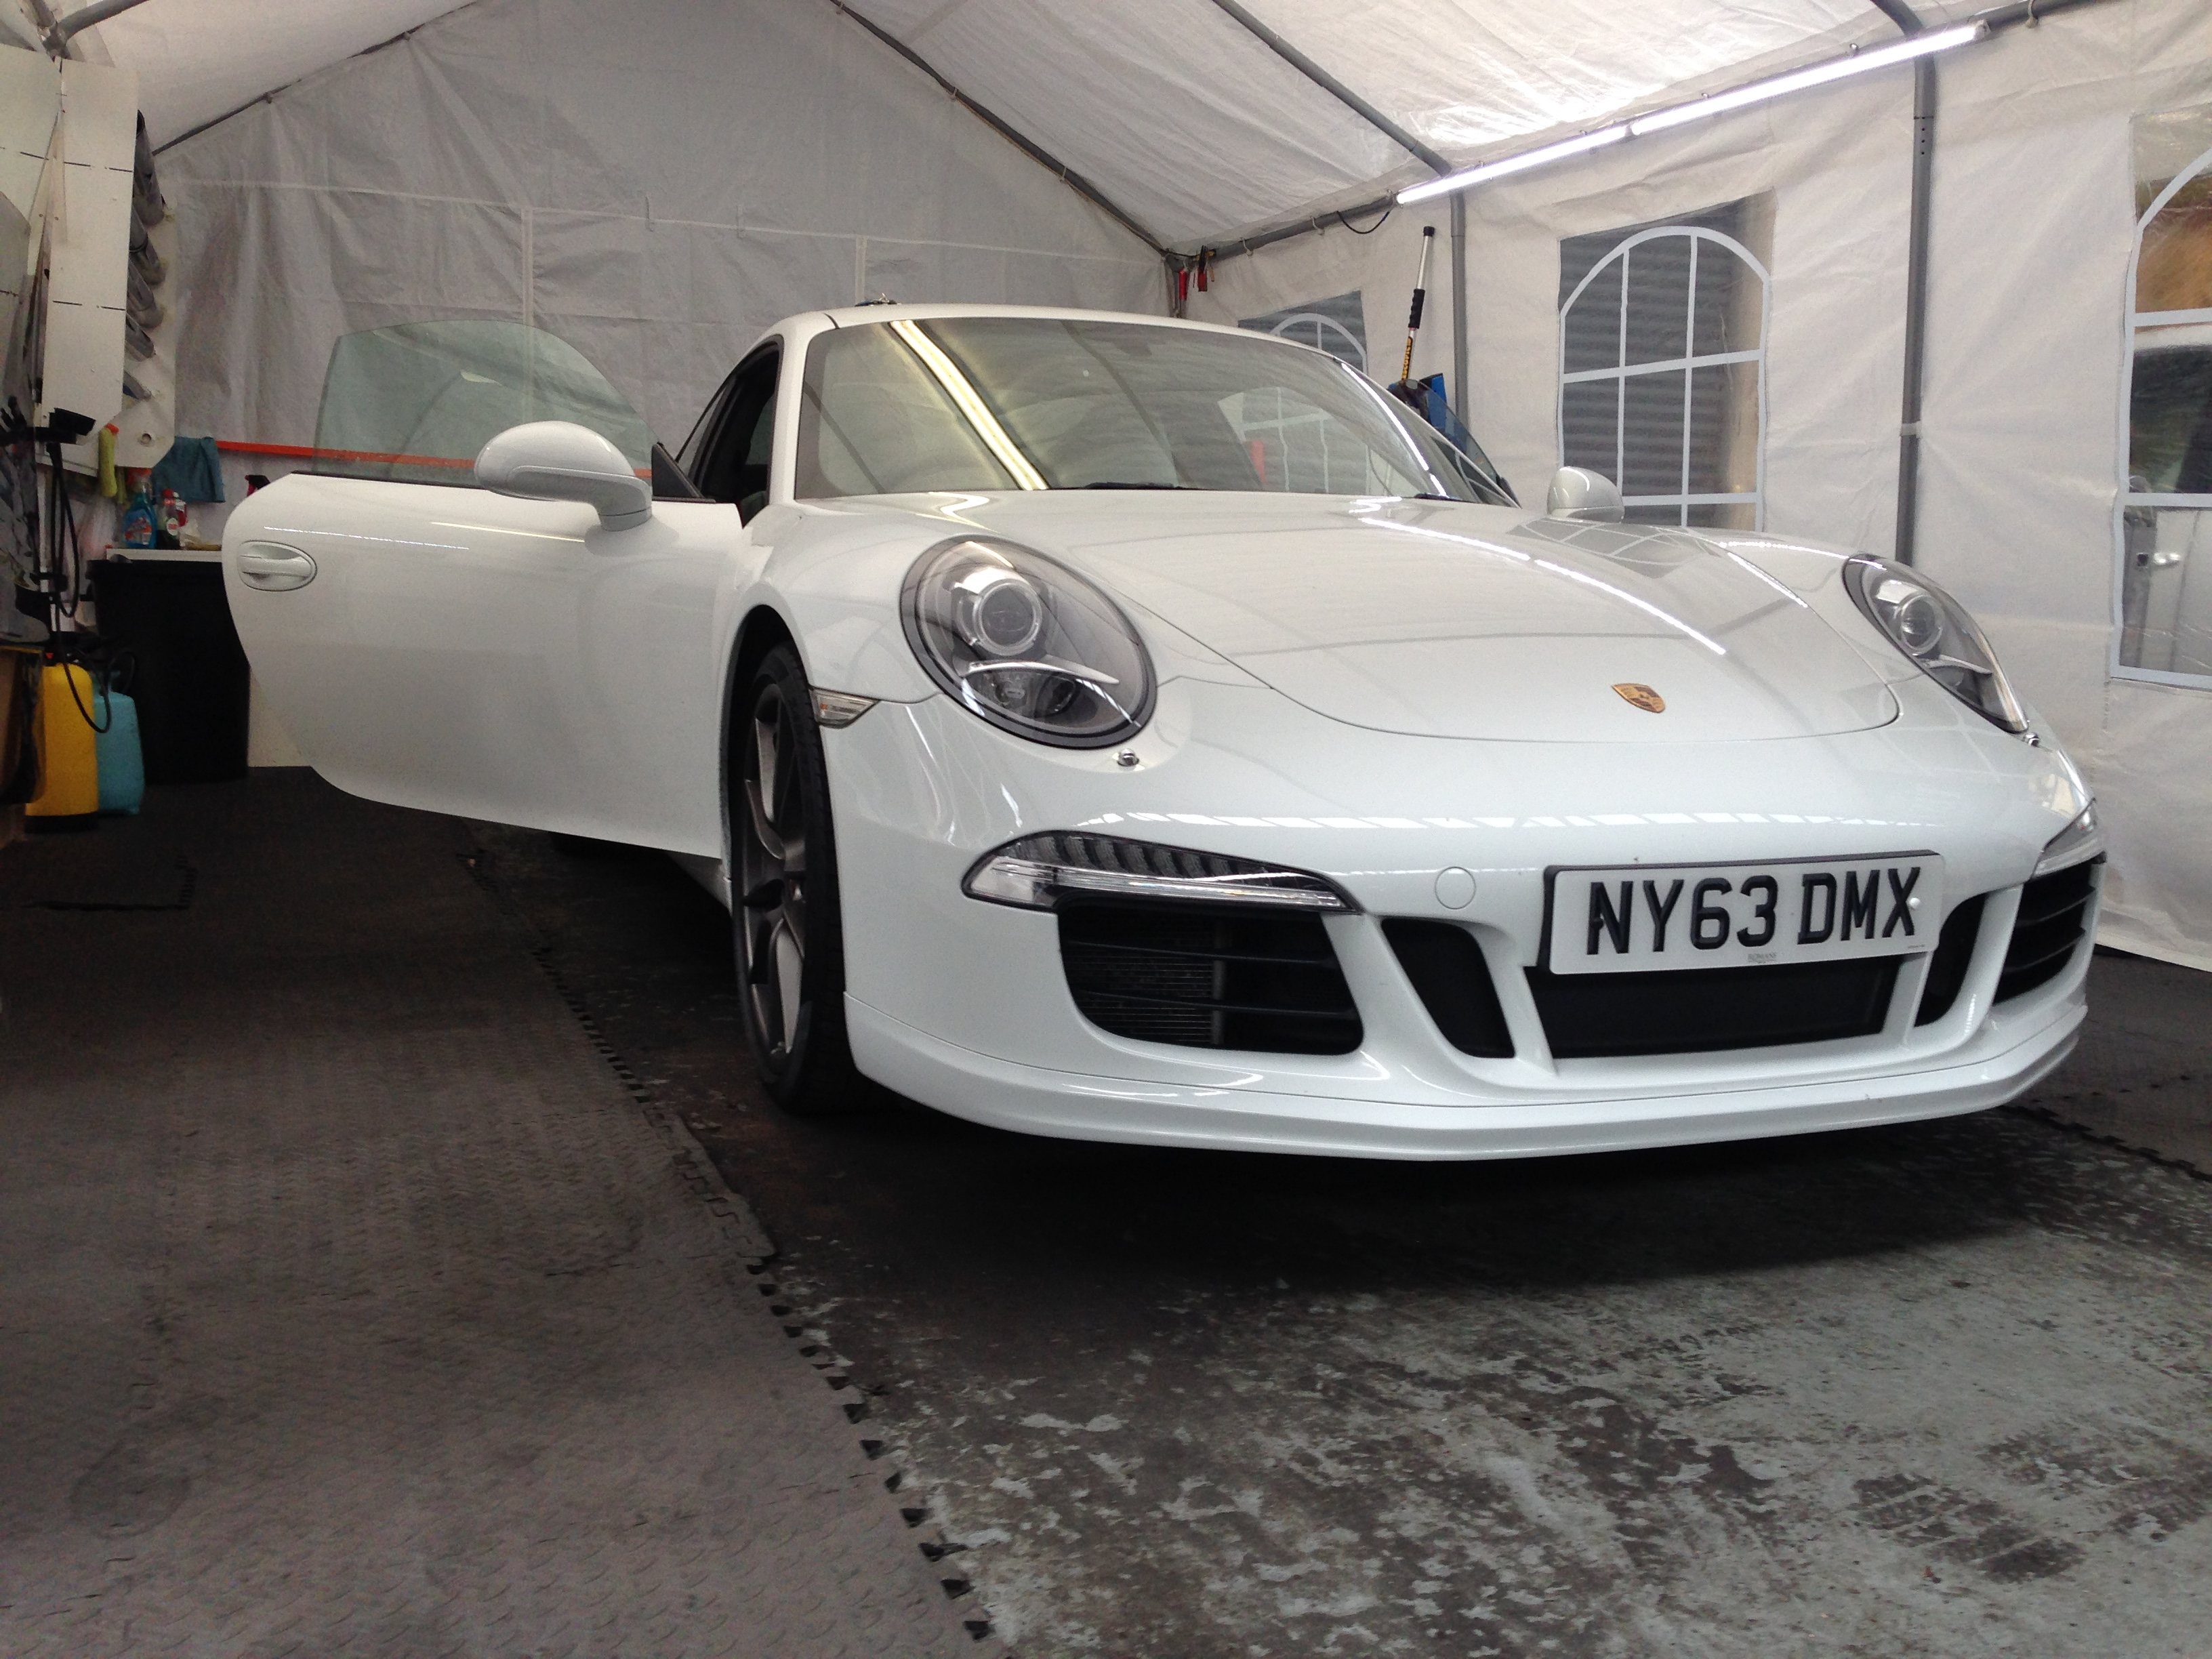 #germancar #whiteporsche #porsche #sportscar #windowtinting #isleworth